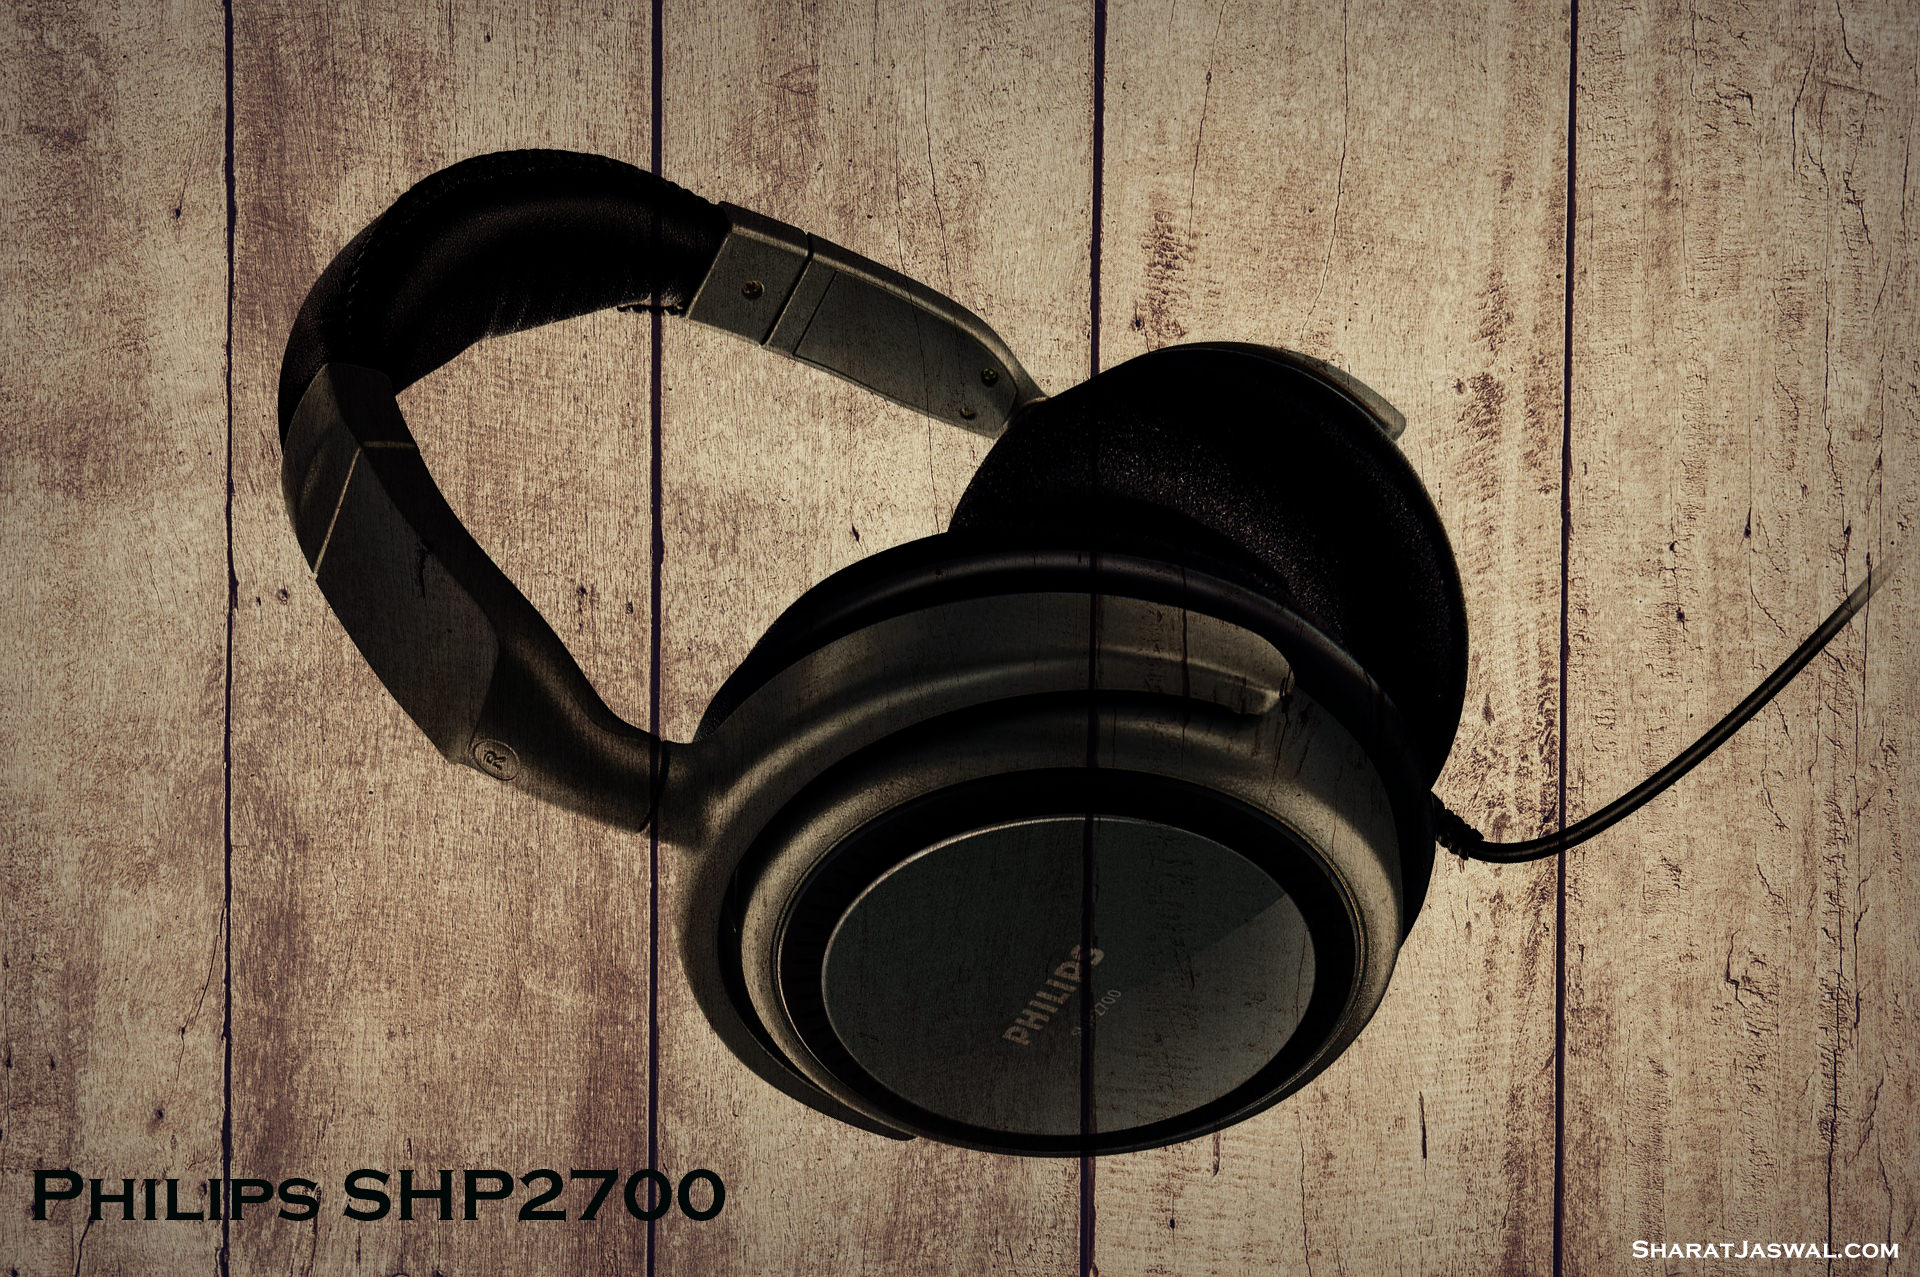 Philips SHP2700 Hi-Fi Stereo Headphones